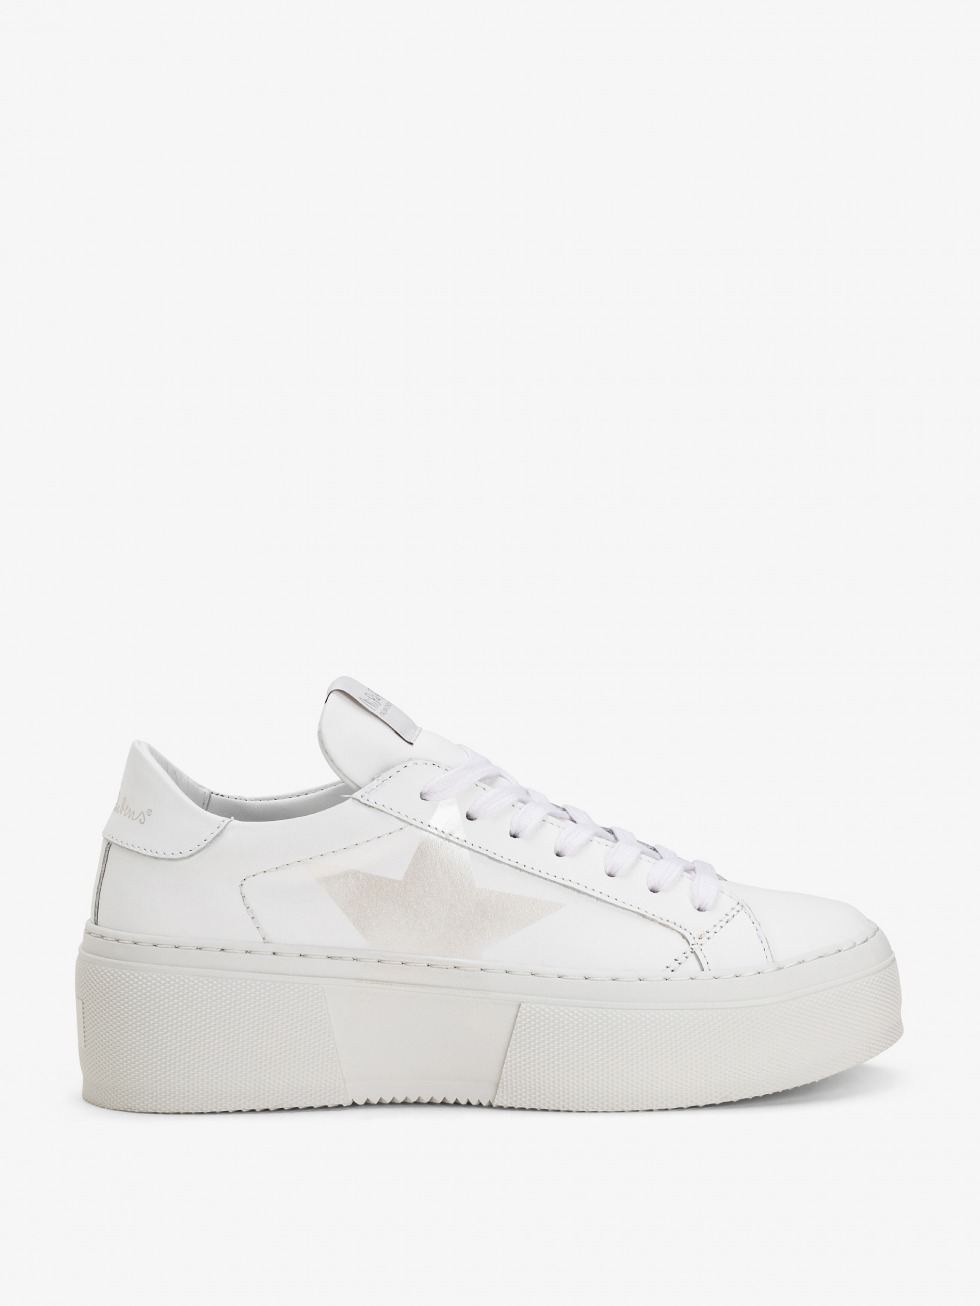 Platform Mimosa White Sneakers - Nacre Star